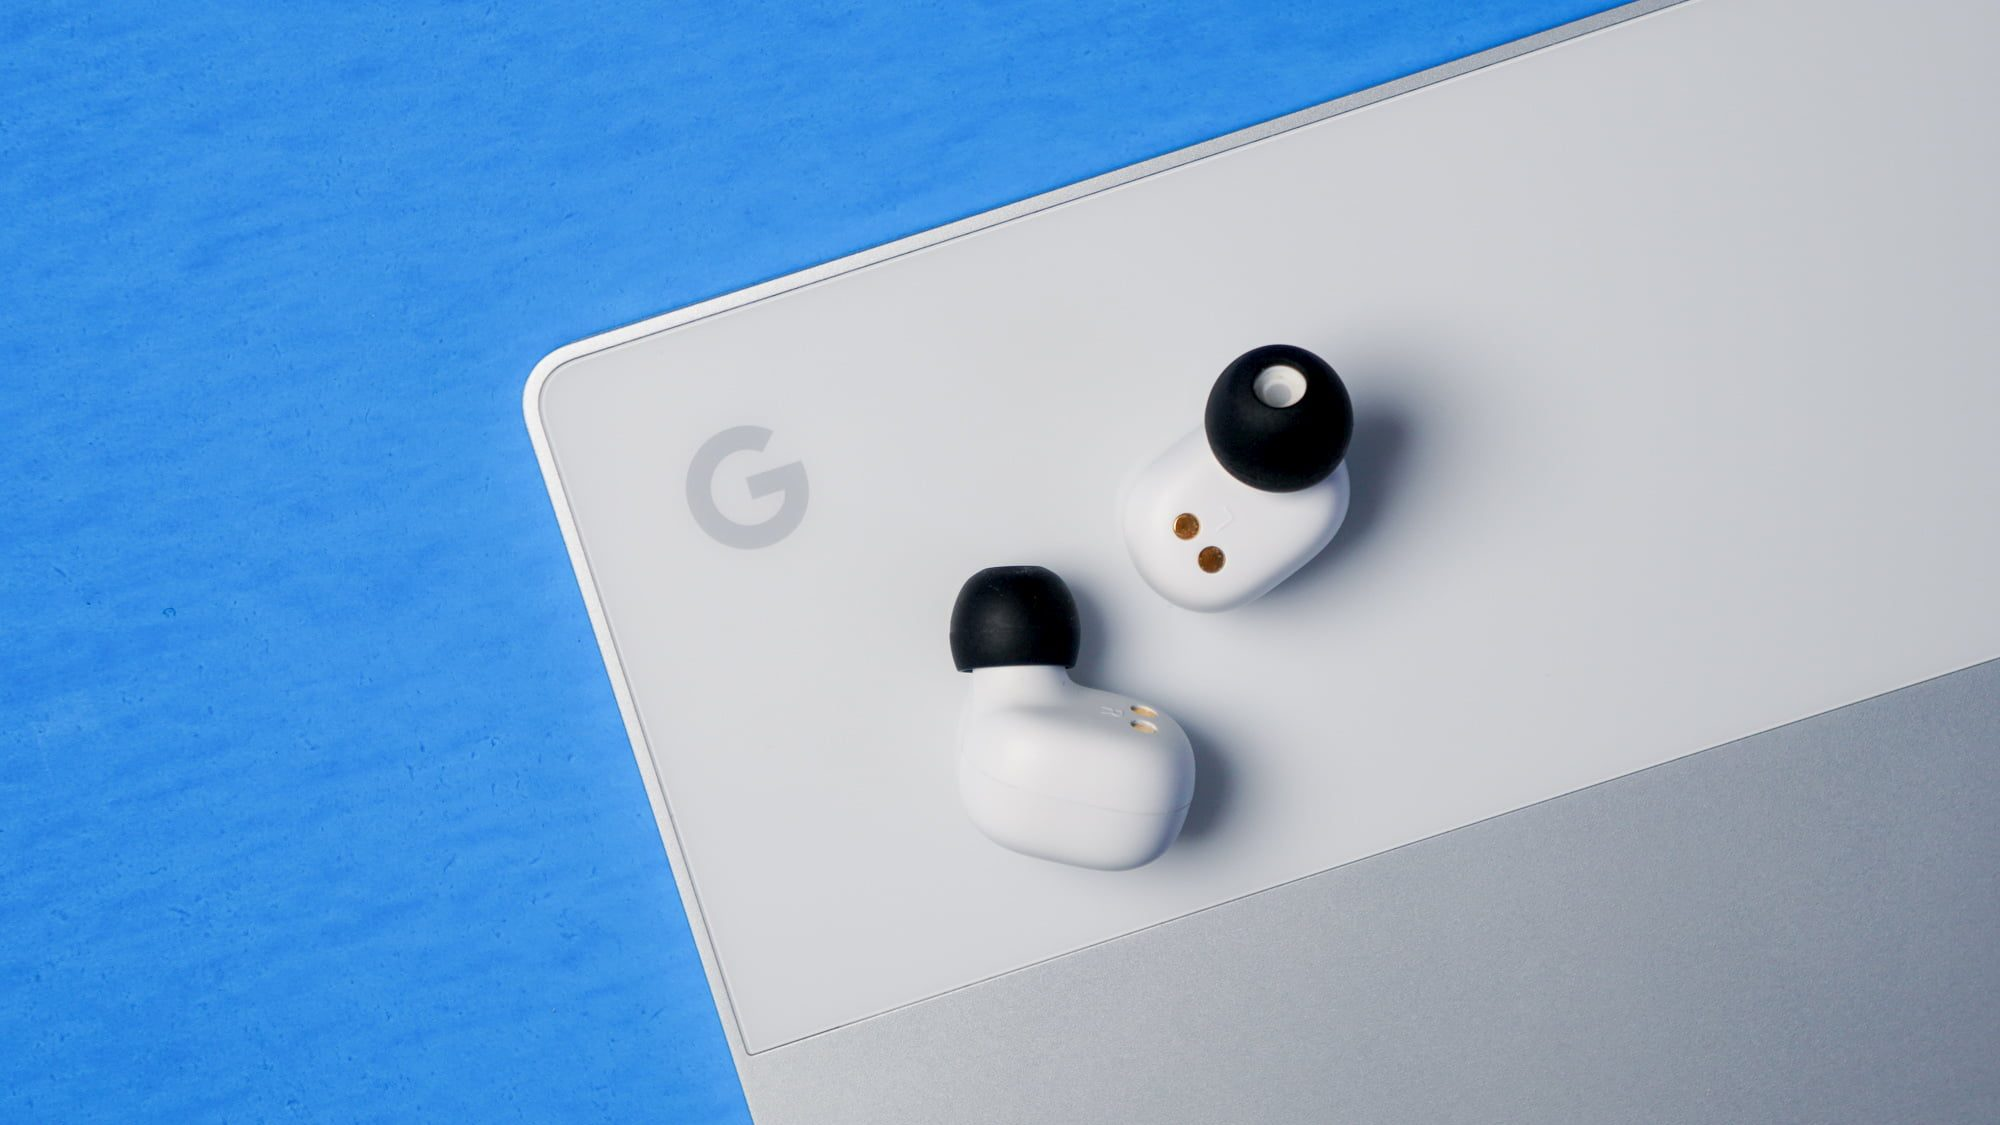 Why I'm extremely excited by the rumored Pixel Buds 2